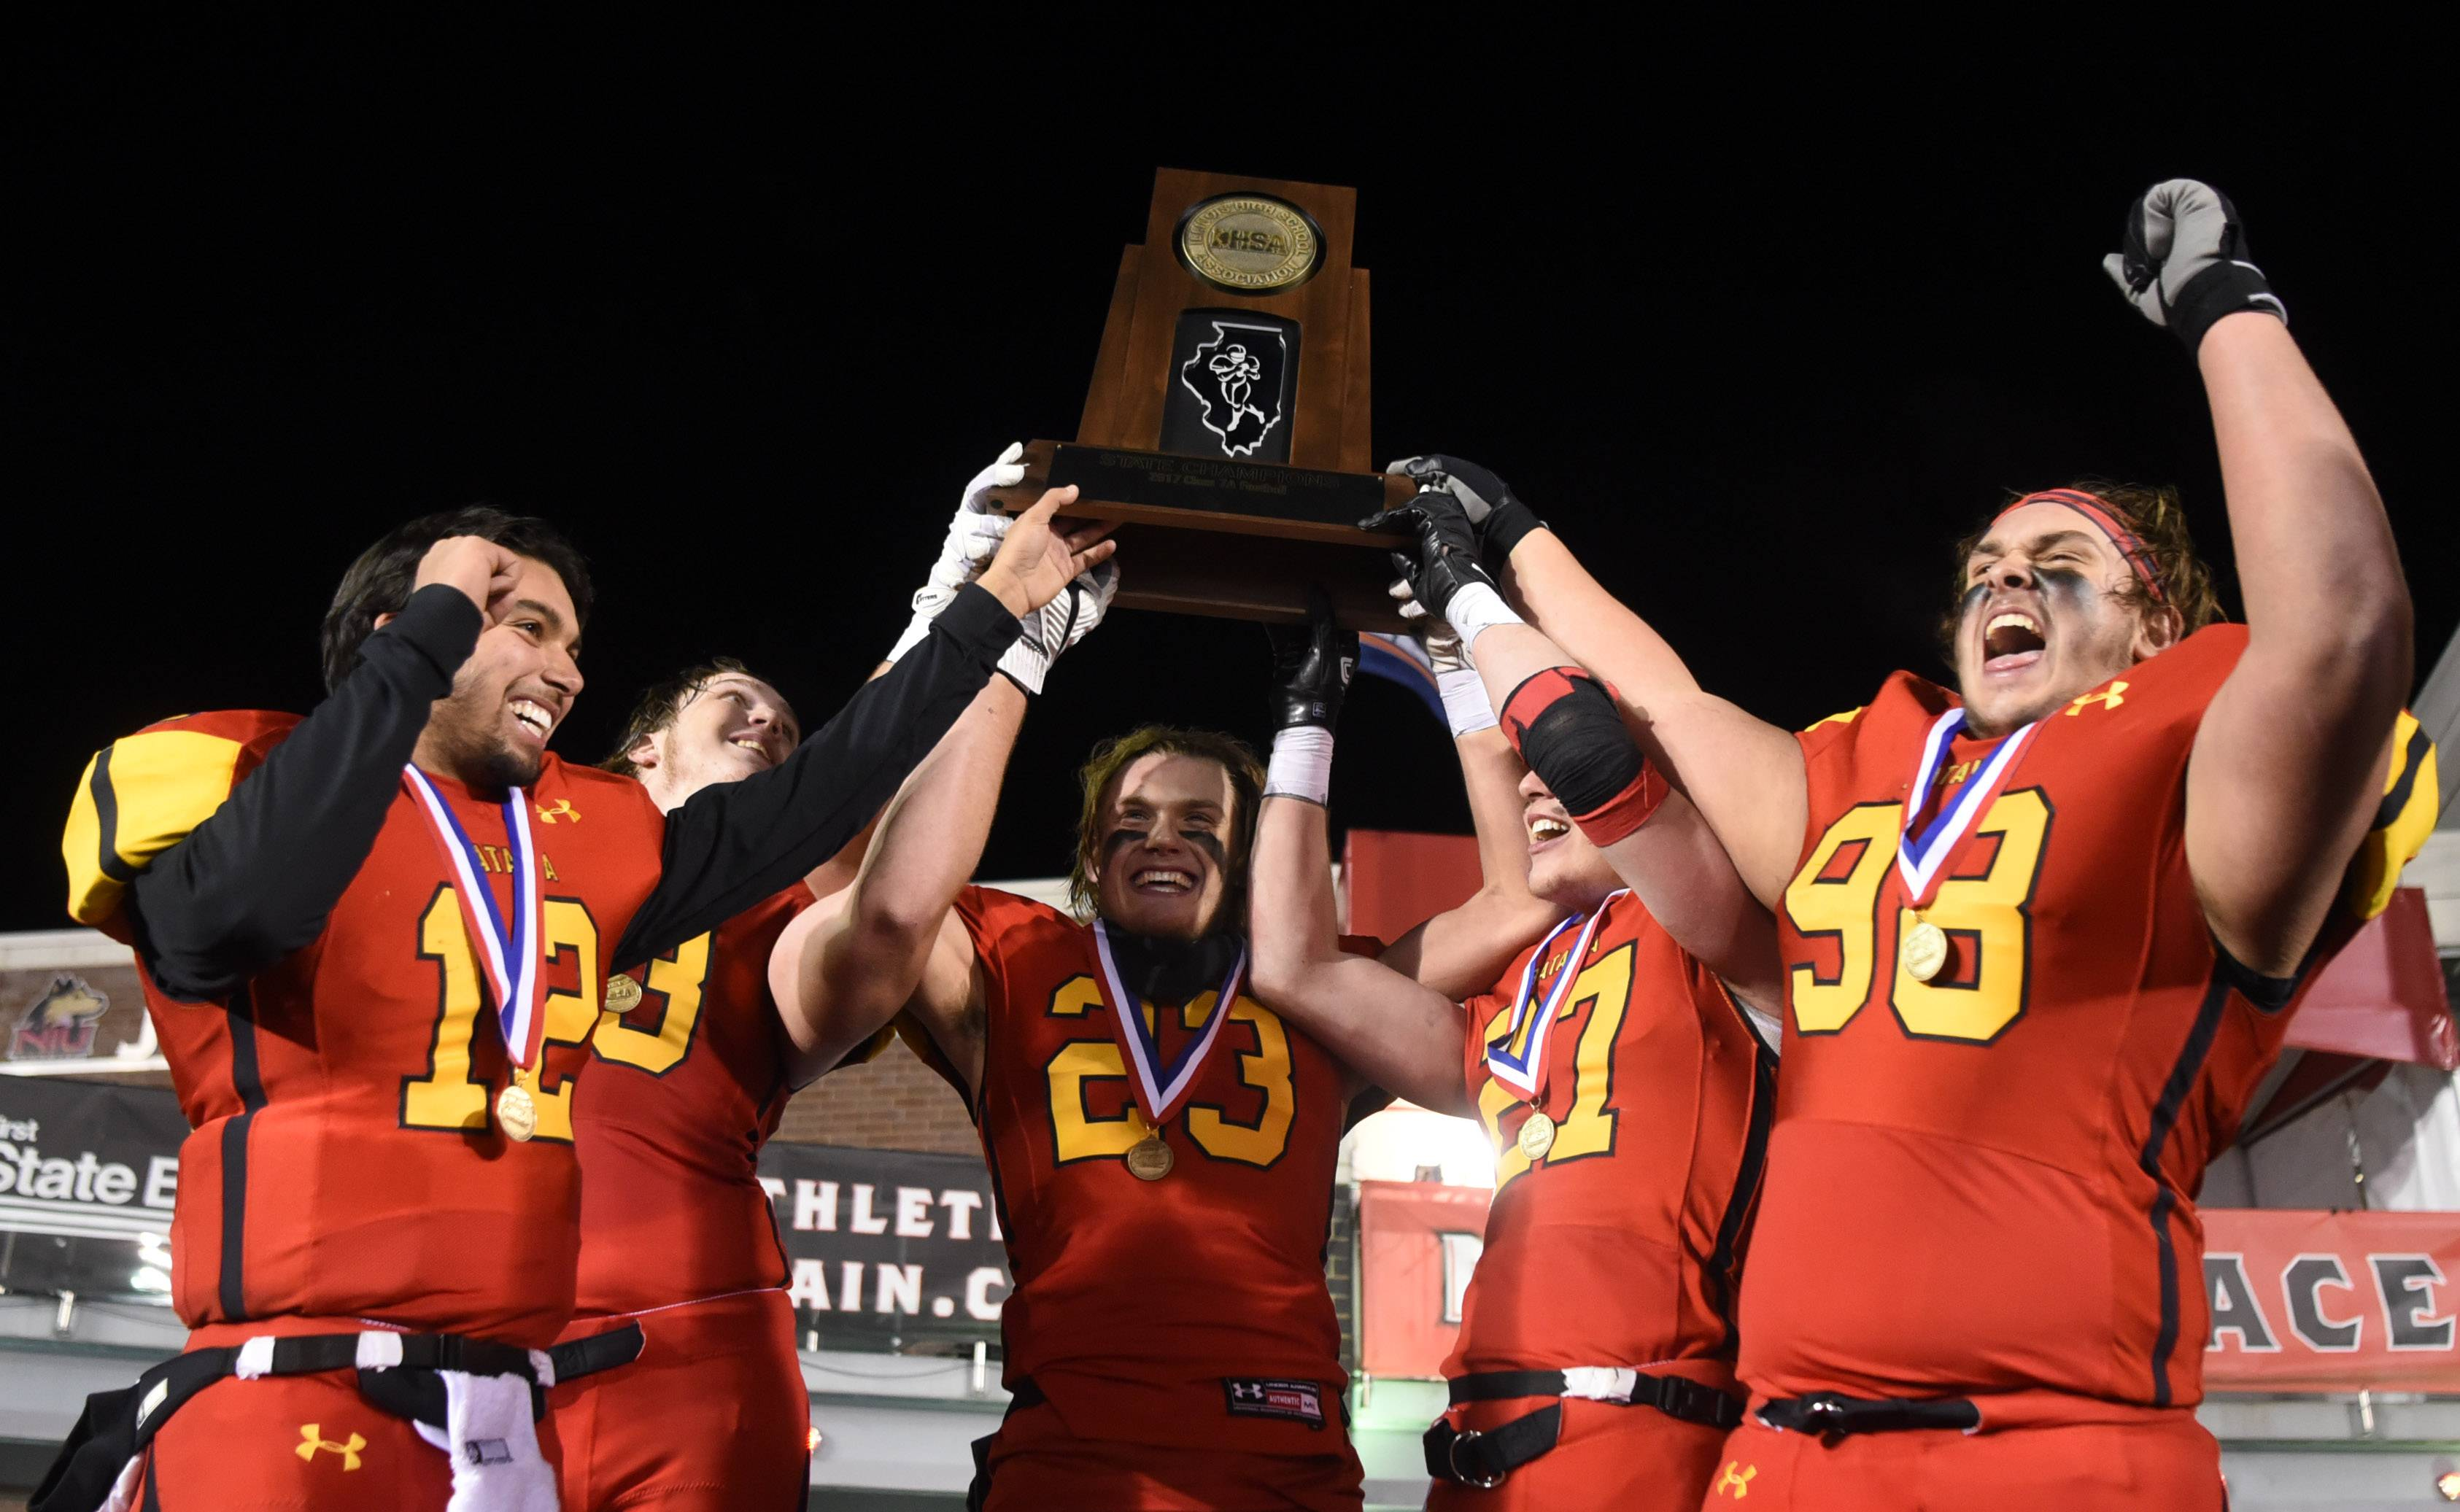 Batavia defeats Lake Zurich in OT thriller for Class 7A state championship